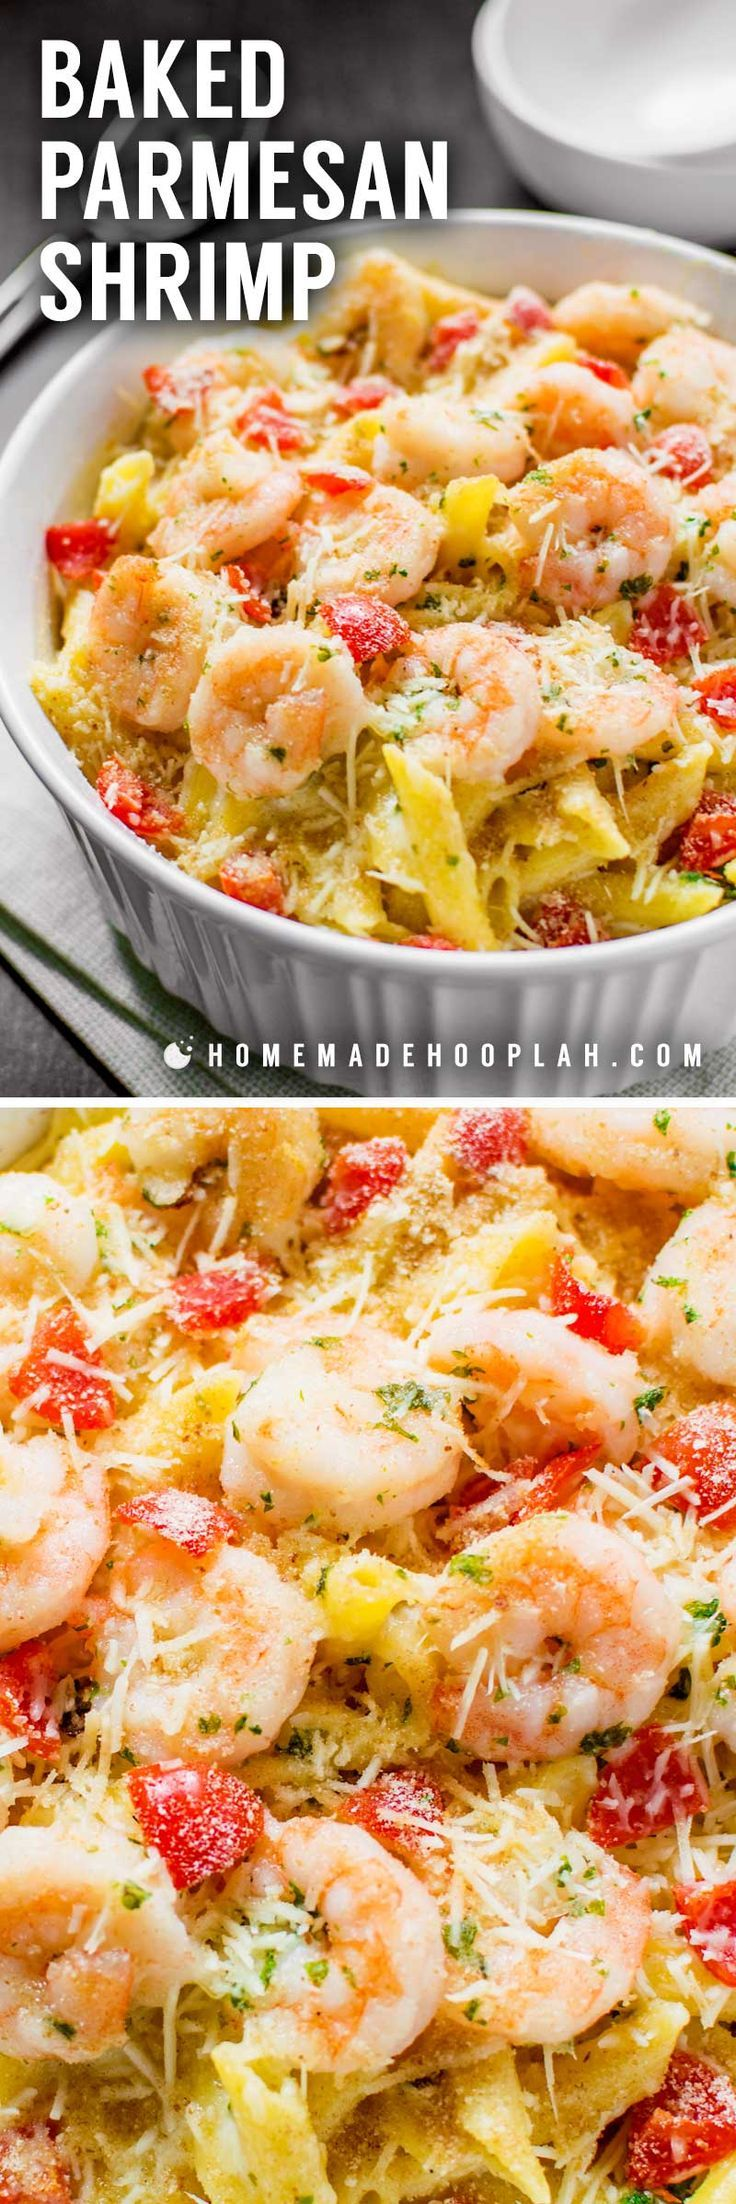 Best 25 Seafood Recipes Ideas On Pinterest Recipes Seafood Crab Crab Delights Recipe And Pan